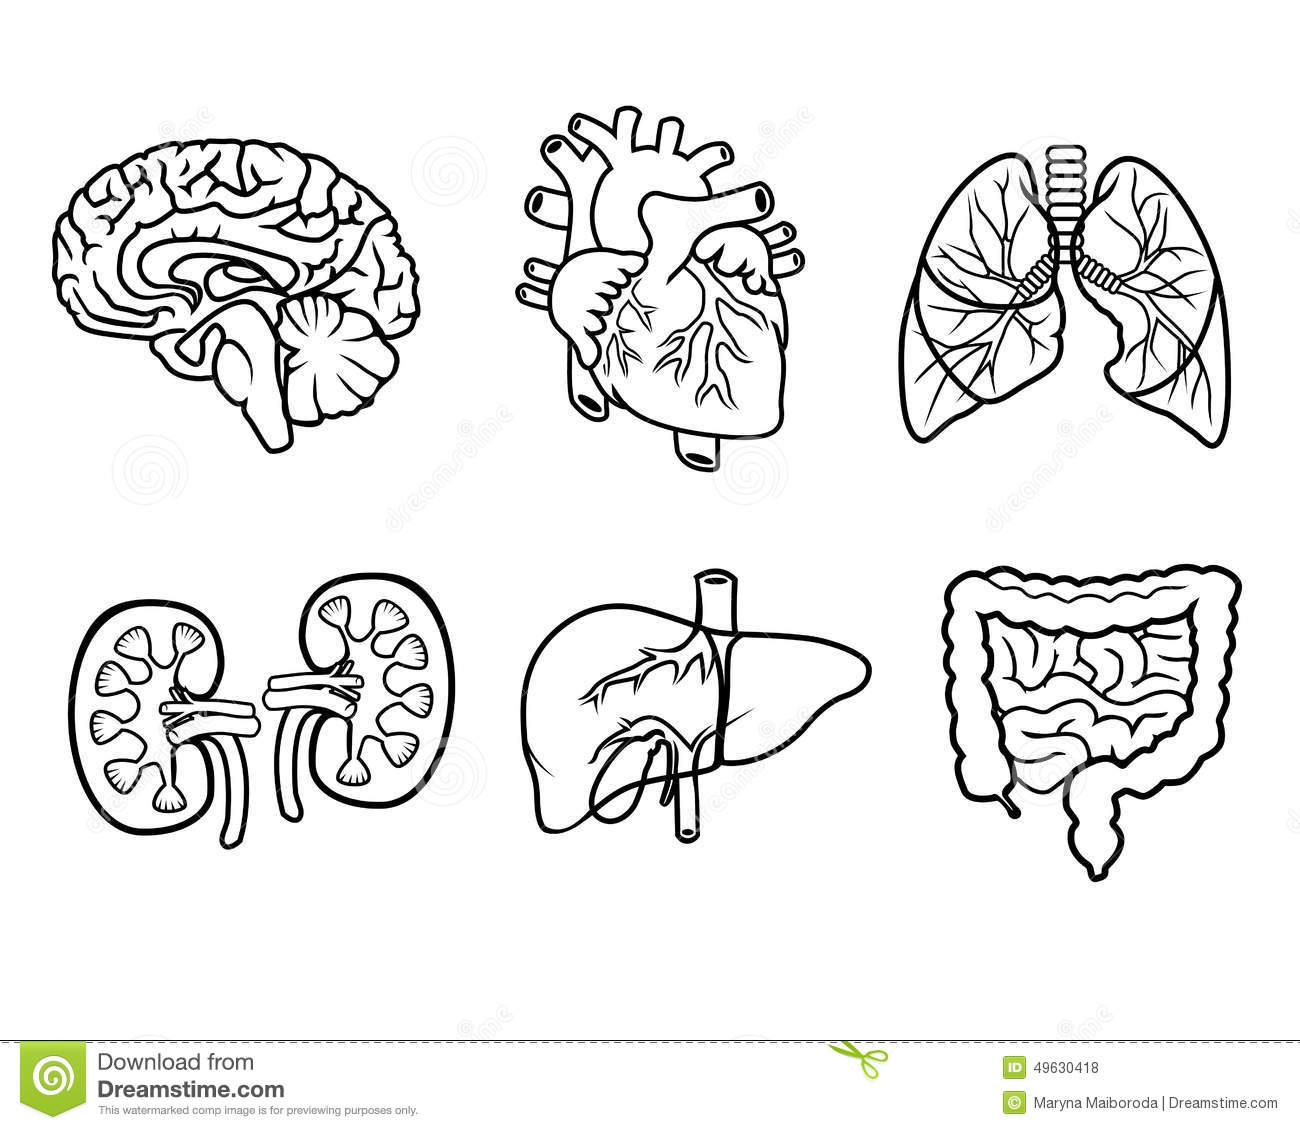 Human Anatomy Coloring Pages Sketch Coloring Page